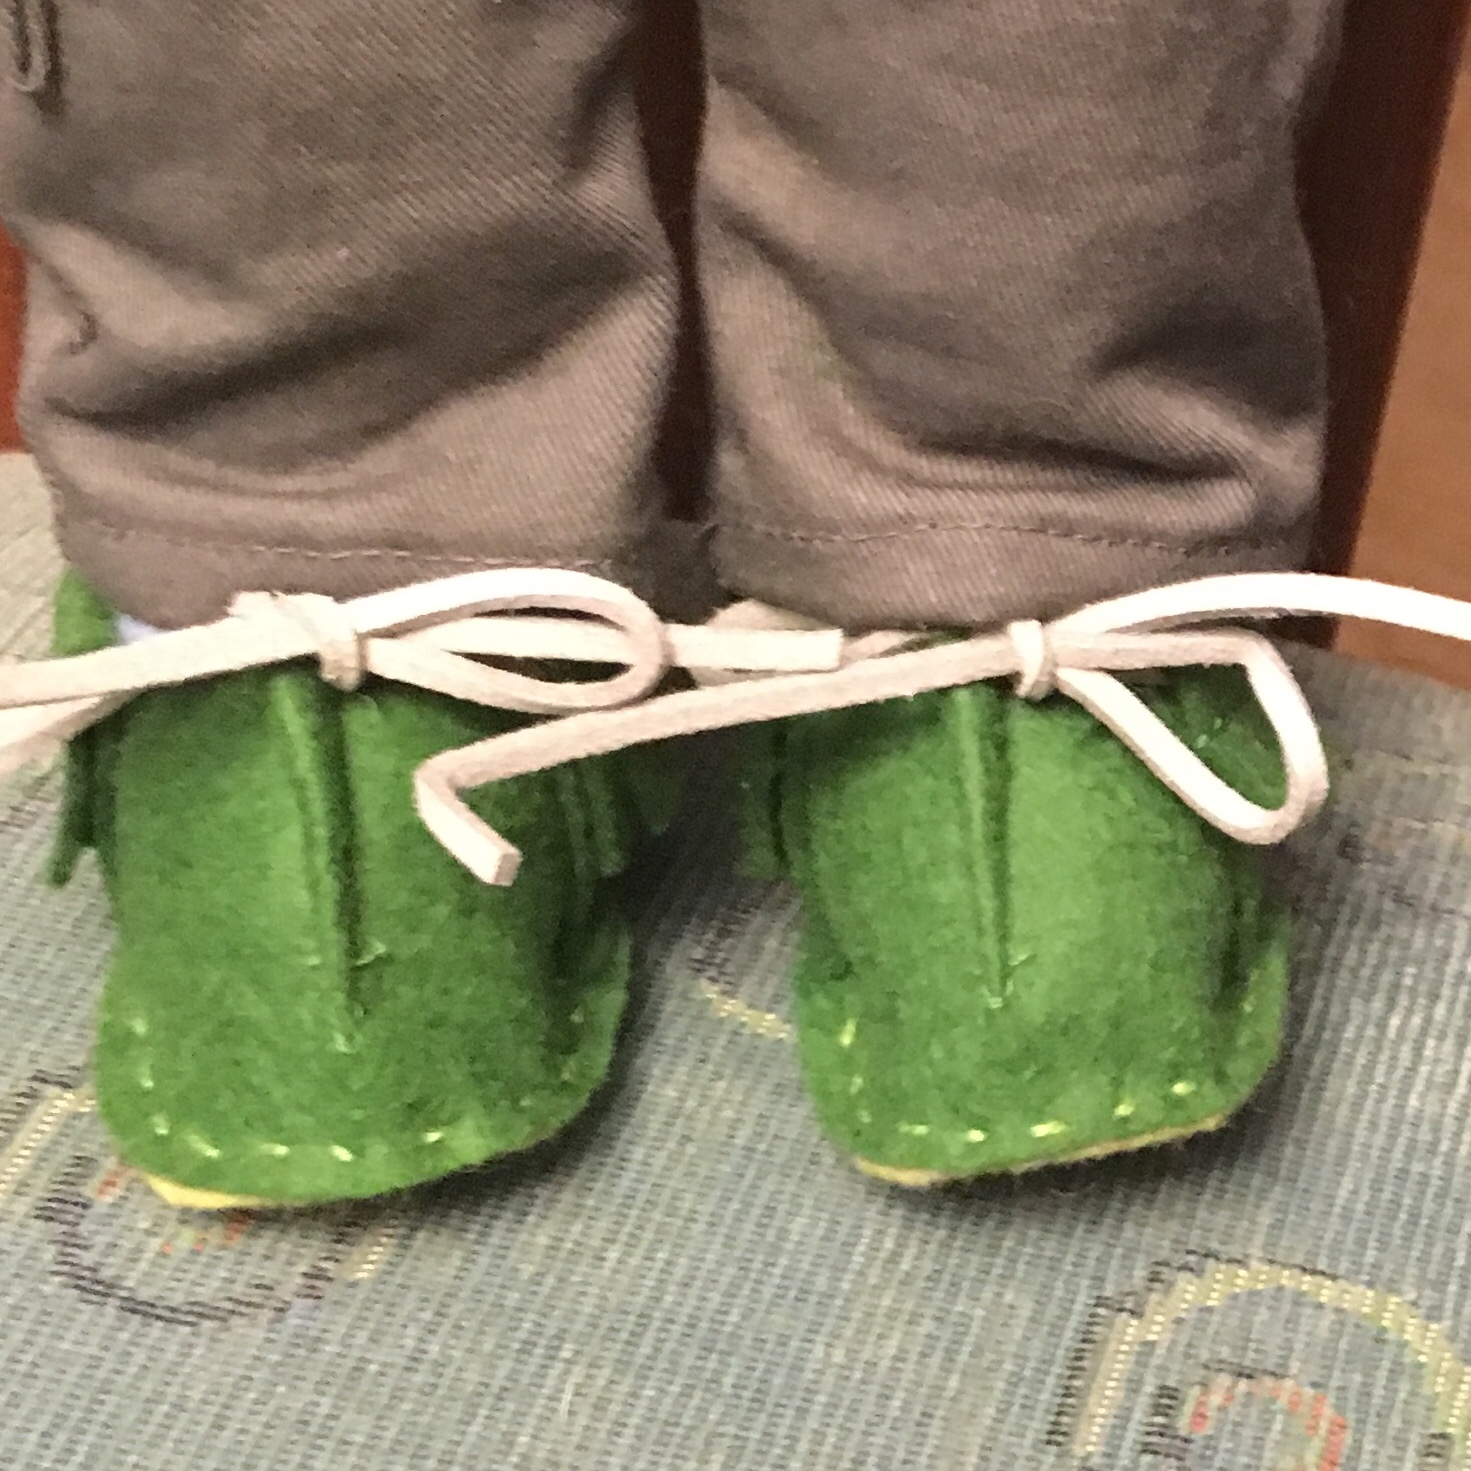 100% Wool Felt Moccasins with rawhide laces